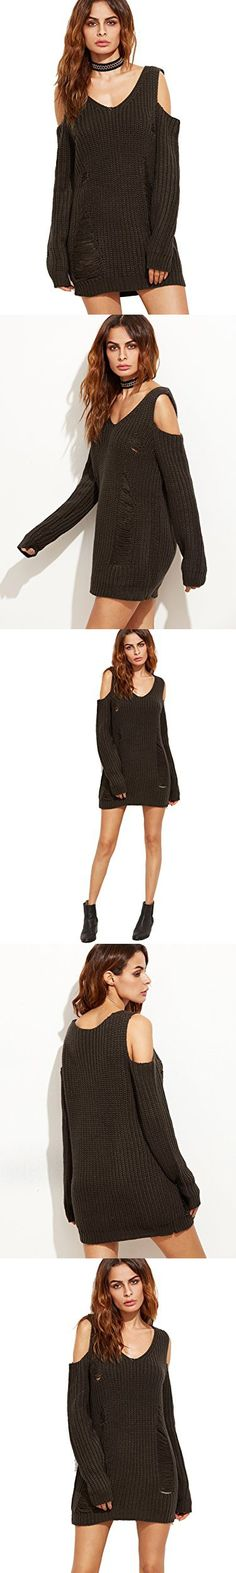 ROMWE Women's Casual Long Sleeve Cold Shoulder Ripped Sweater Dress Coffee One-size